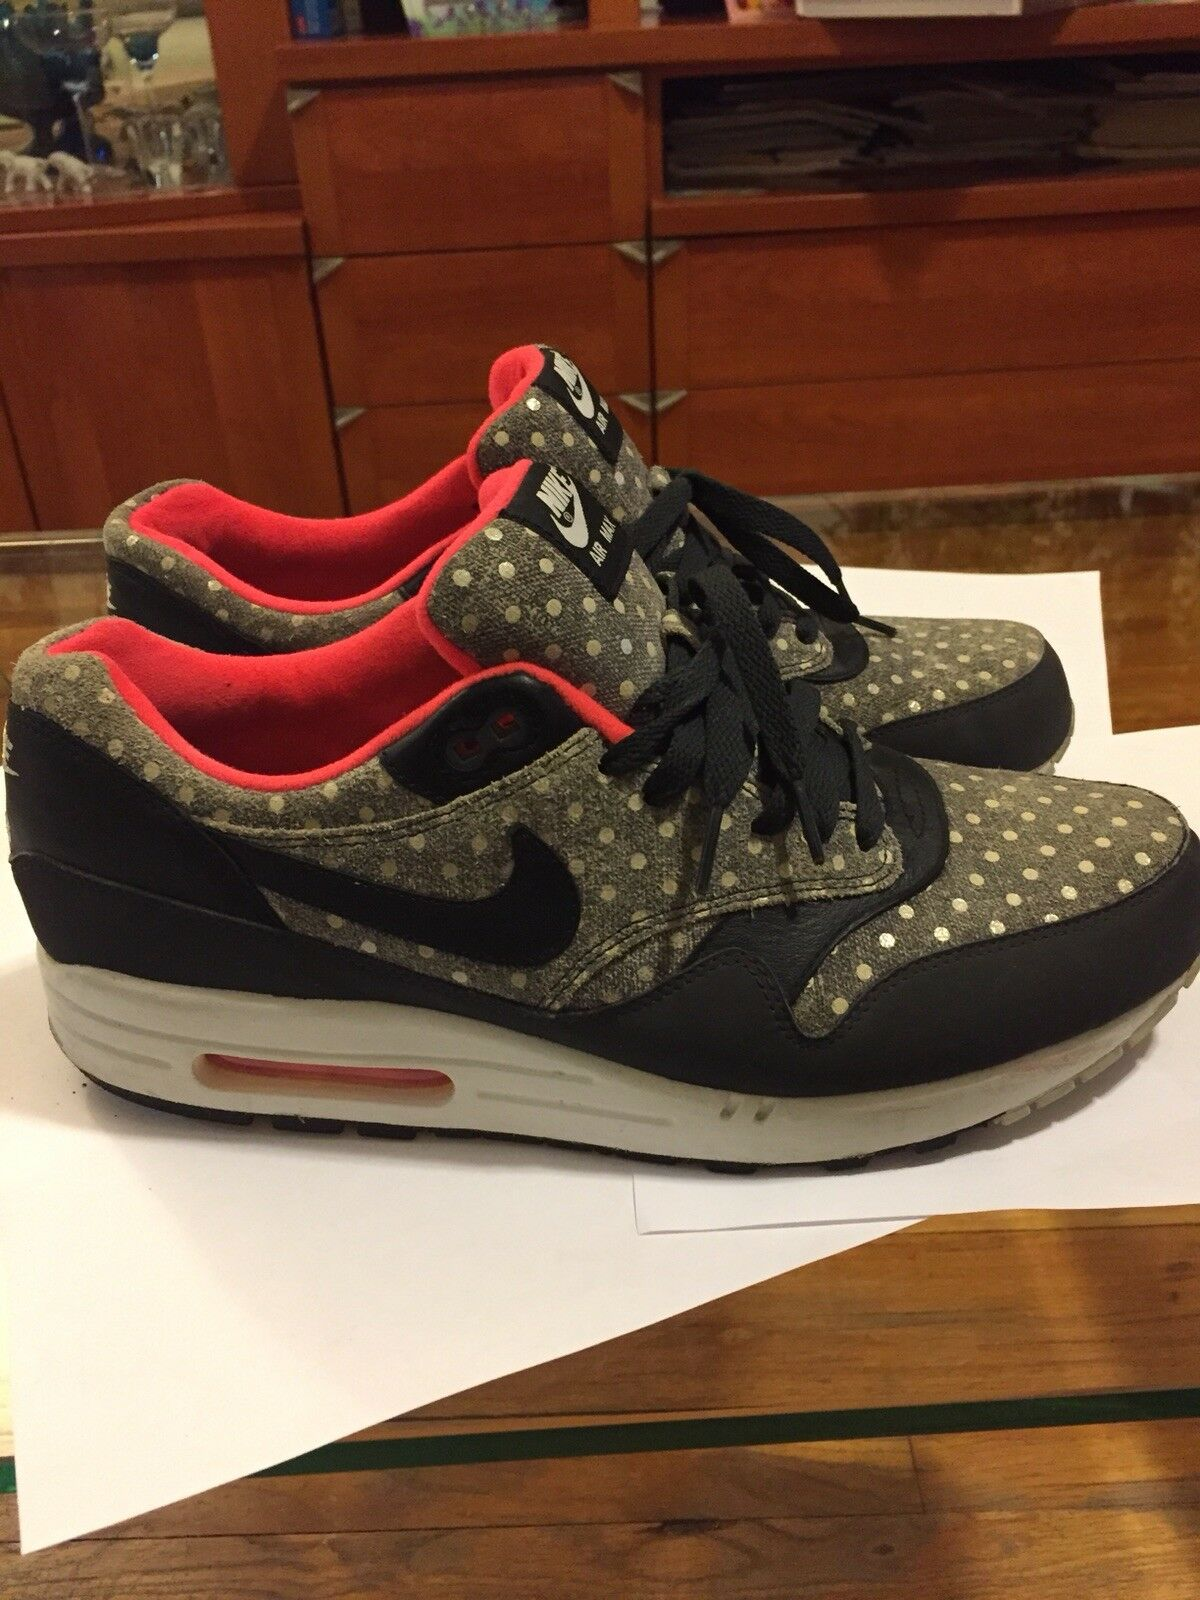 Nike Air Max 1 Premium Polka Dot Used Comfortable Great discount New shoes for men and women, limited time discount